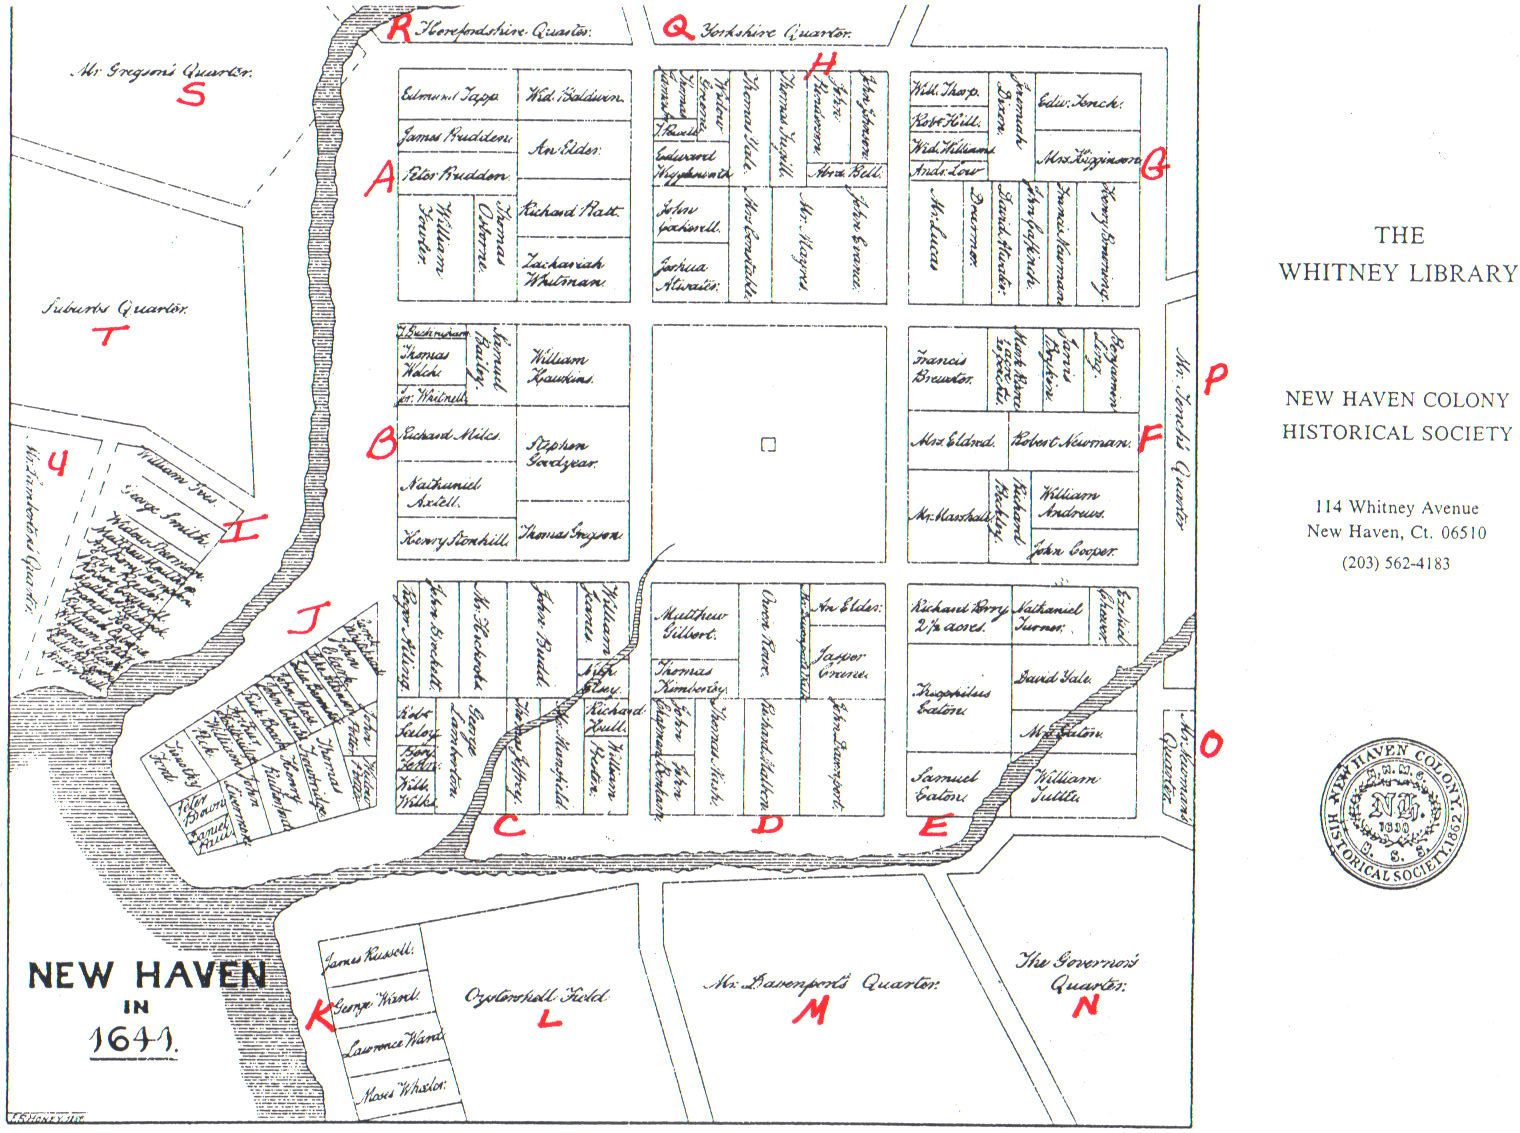 Map depicting the original town plan of nine squares. John Brockett was given the credit for laying out the plan in 1641.